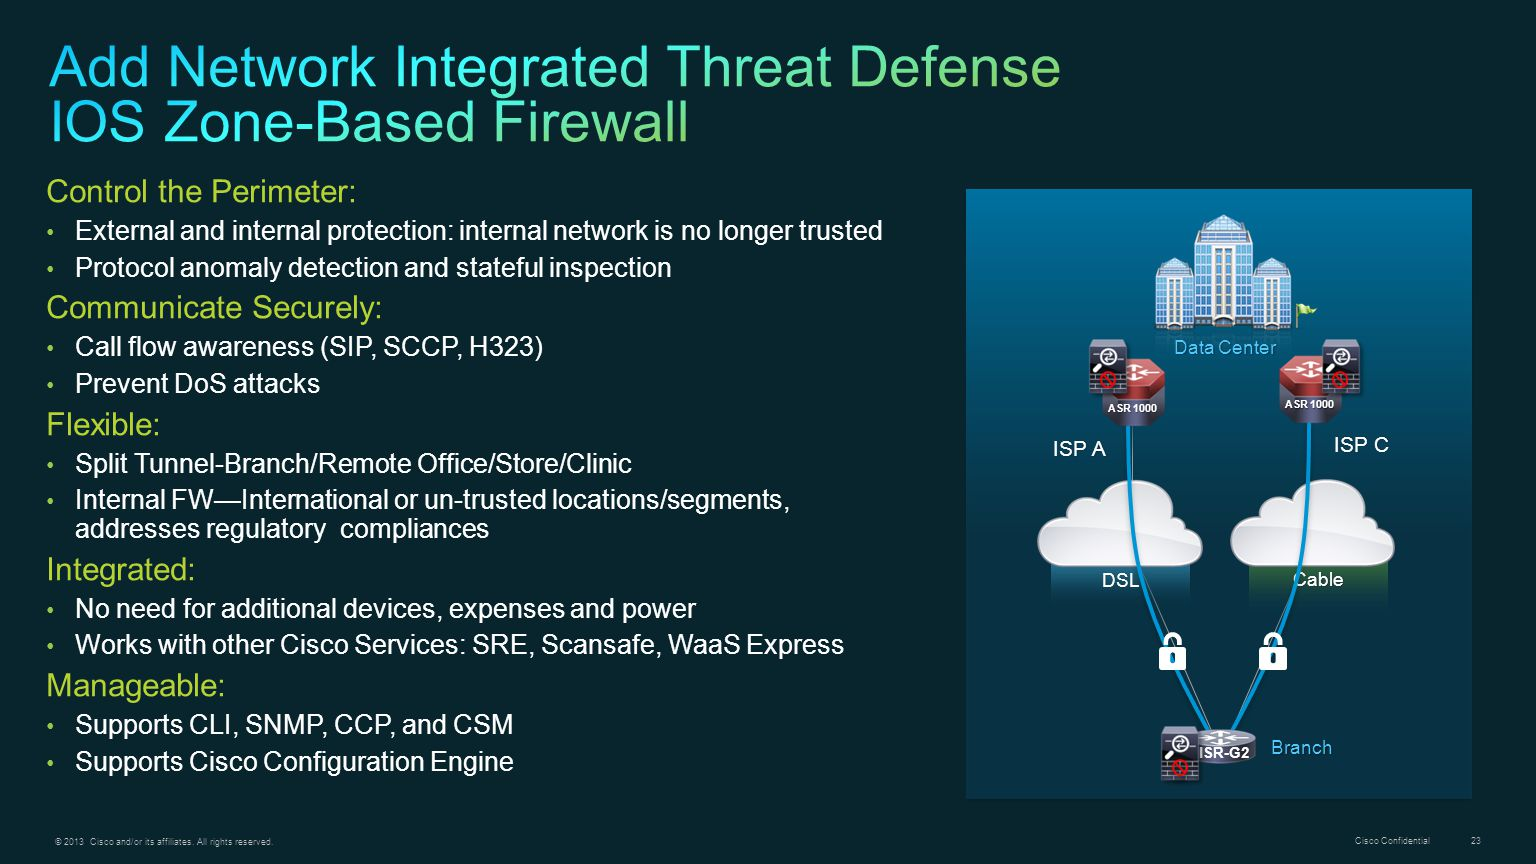 Add Network Integrated Threat Defense IOS Zone-Based Firewall